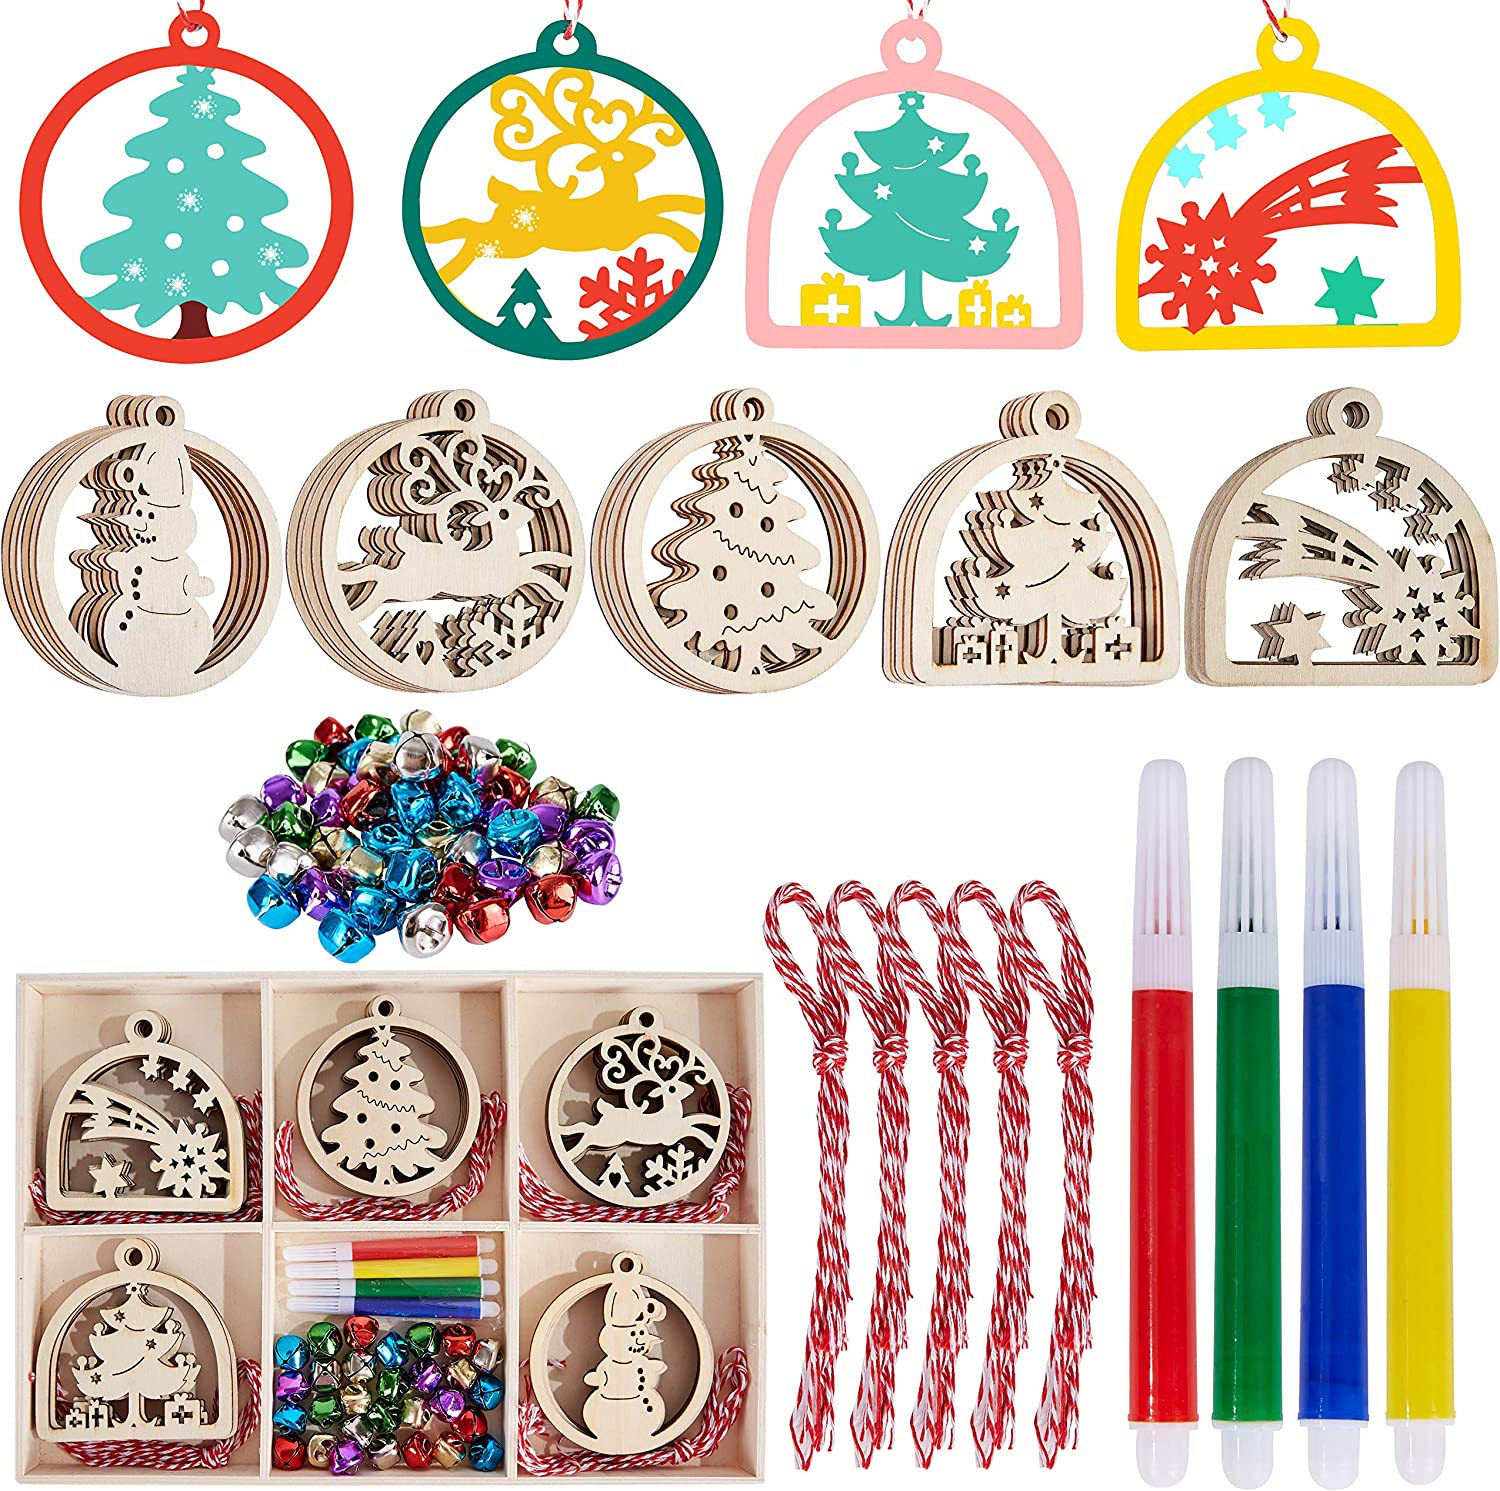 Artmag 30pcs Unfinished Wooden Hanging Ornaments for Christmas Decorations,5 Styles DIY Wood Slices with Holes for Kids Crafts Centerpieces Holiday Hanging Decorations